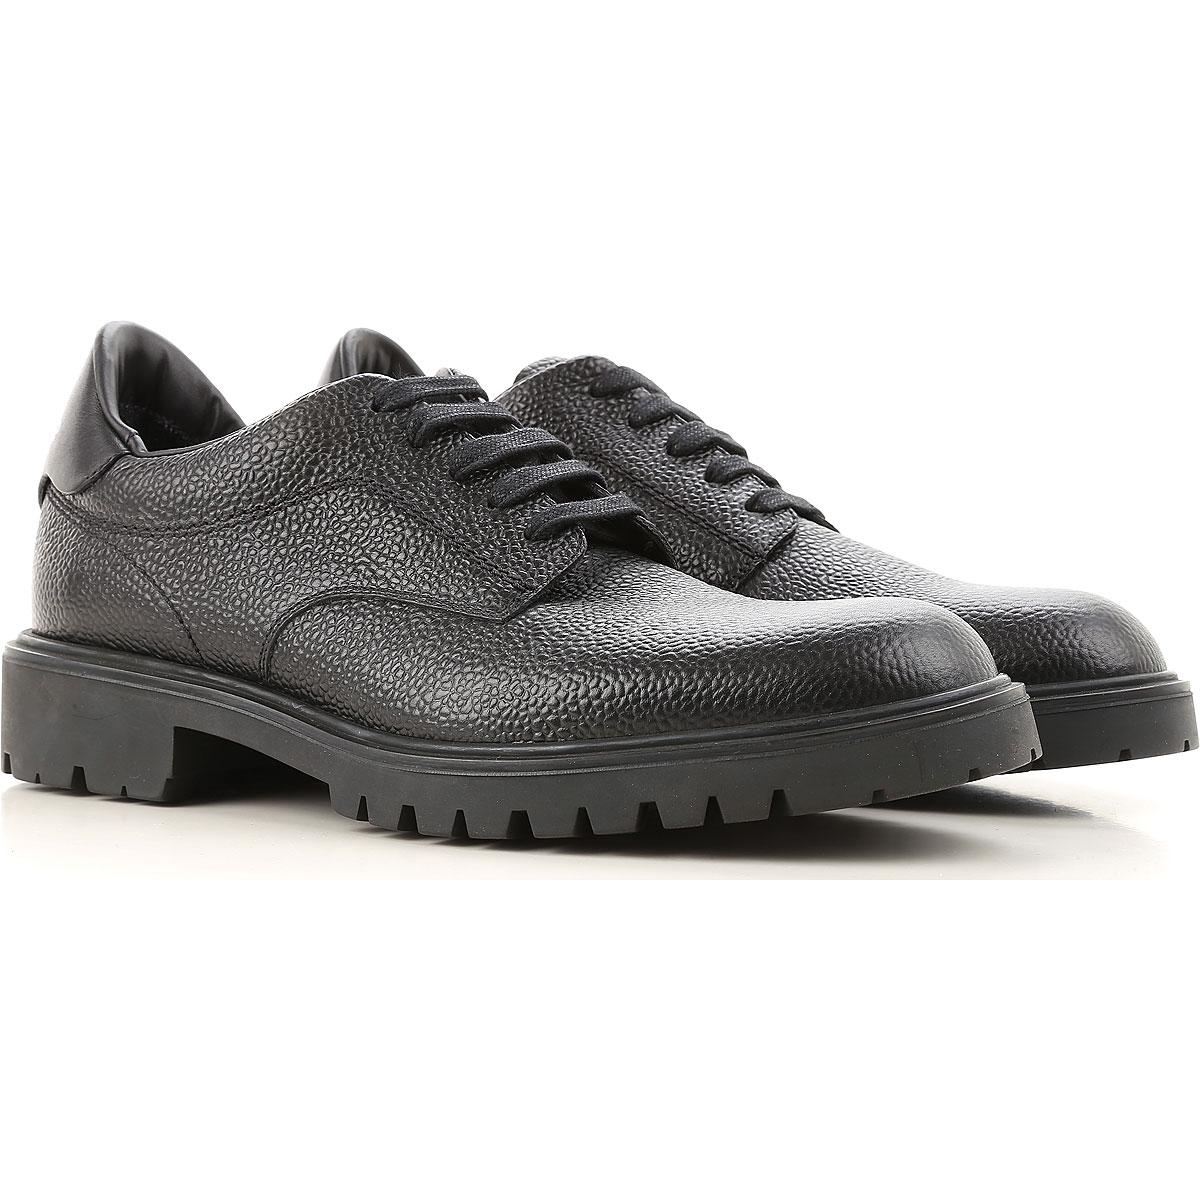 Image of Dsquared2 Brogue Shoes On Sale in Outlet, Black, Leather, 2017, 10 10.5 7.5 8.5 9